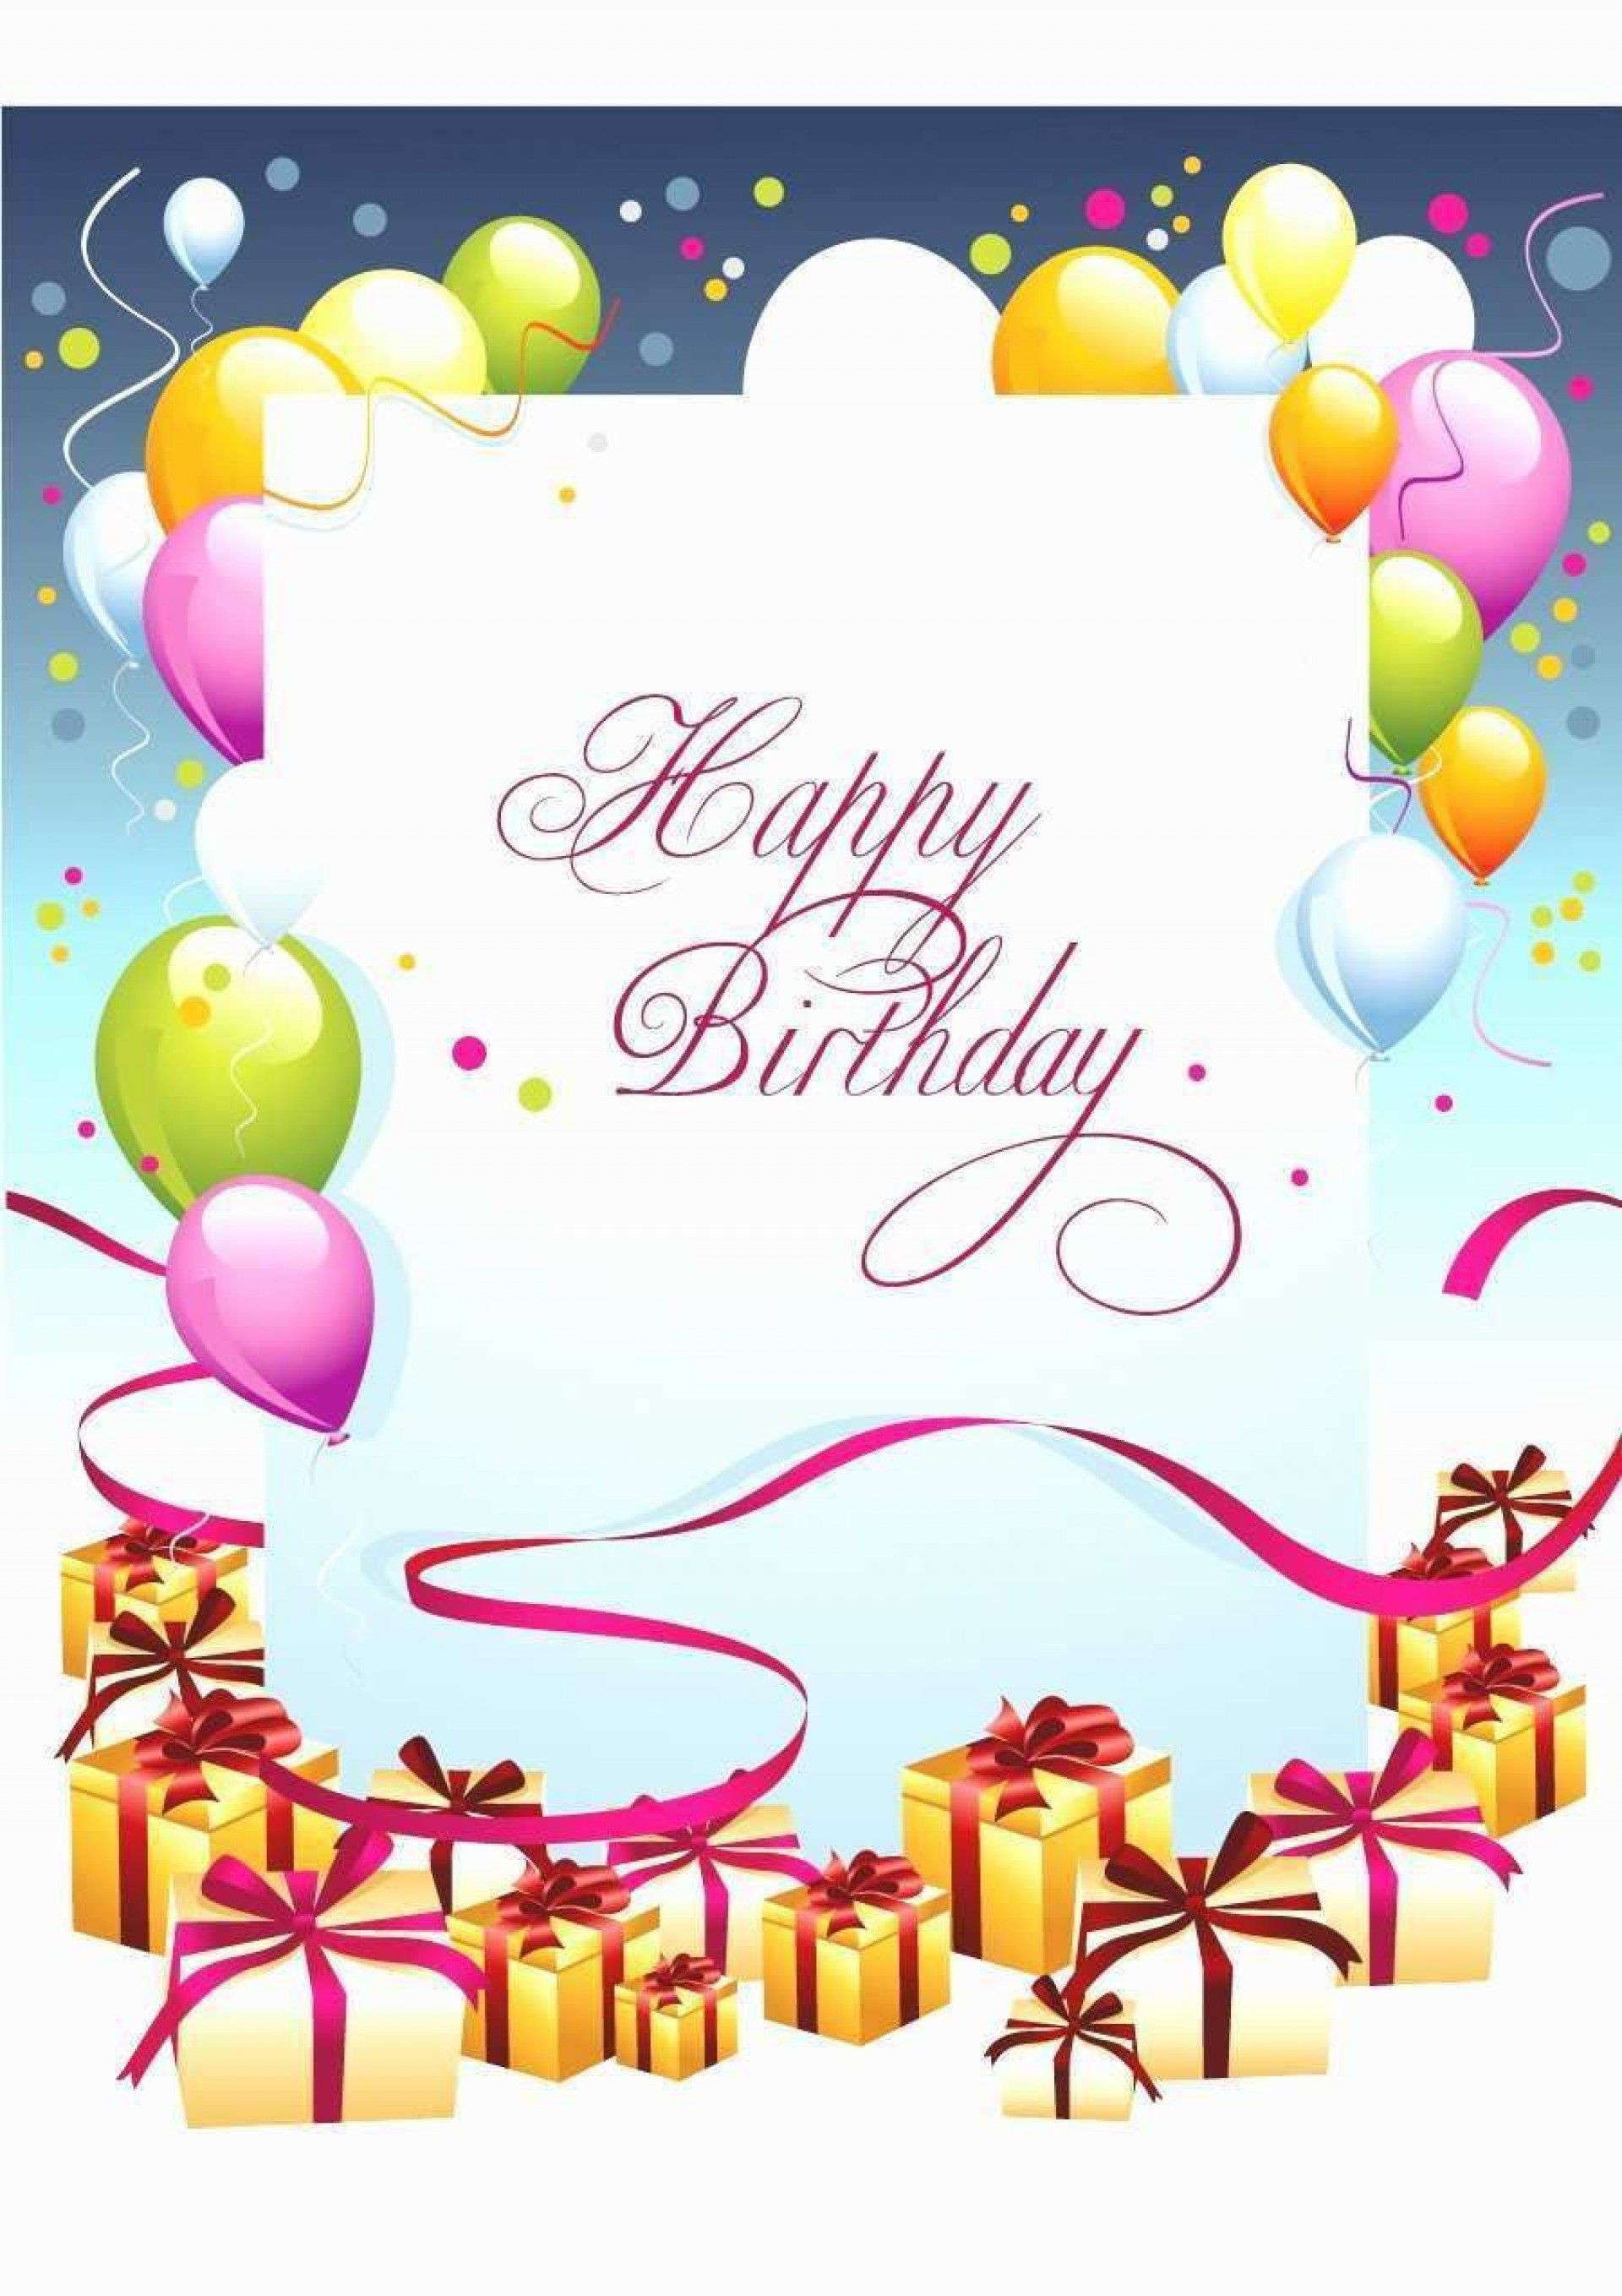 009 Staggering Birthday Card Template For Microsoft Word Inspiration  Free Greeting LayoutFull